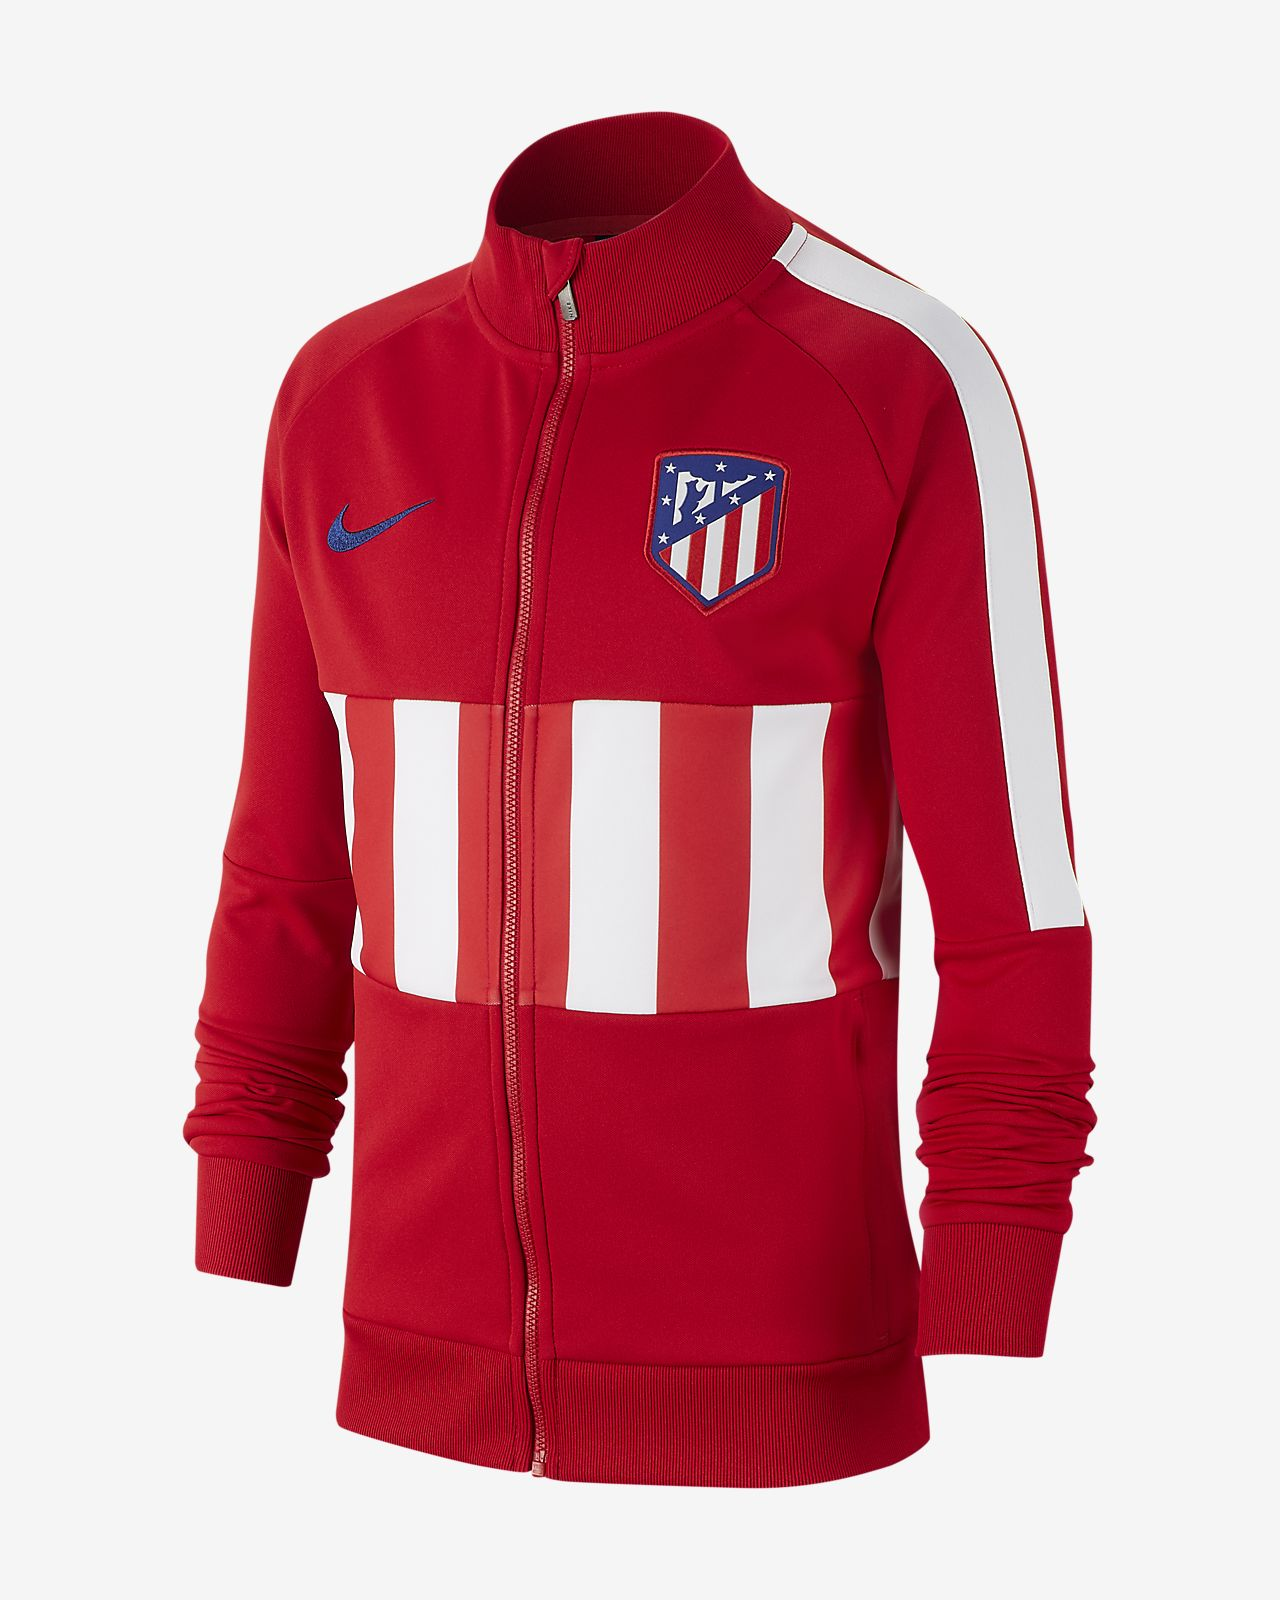 Atlético de Madrid Older Kids' Jacket